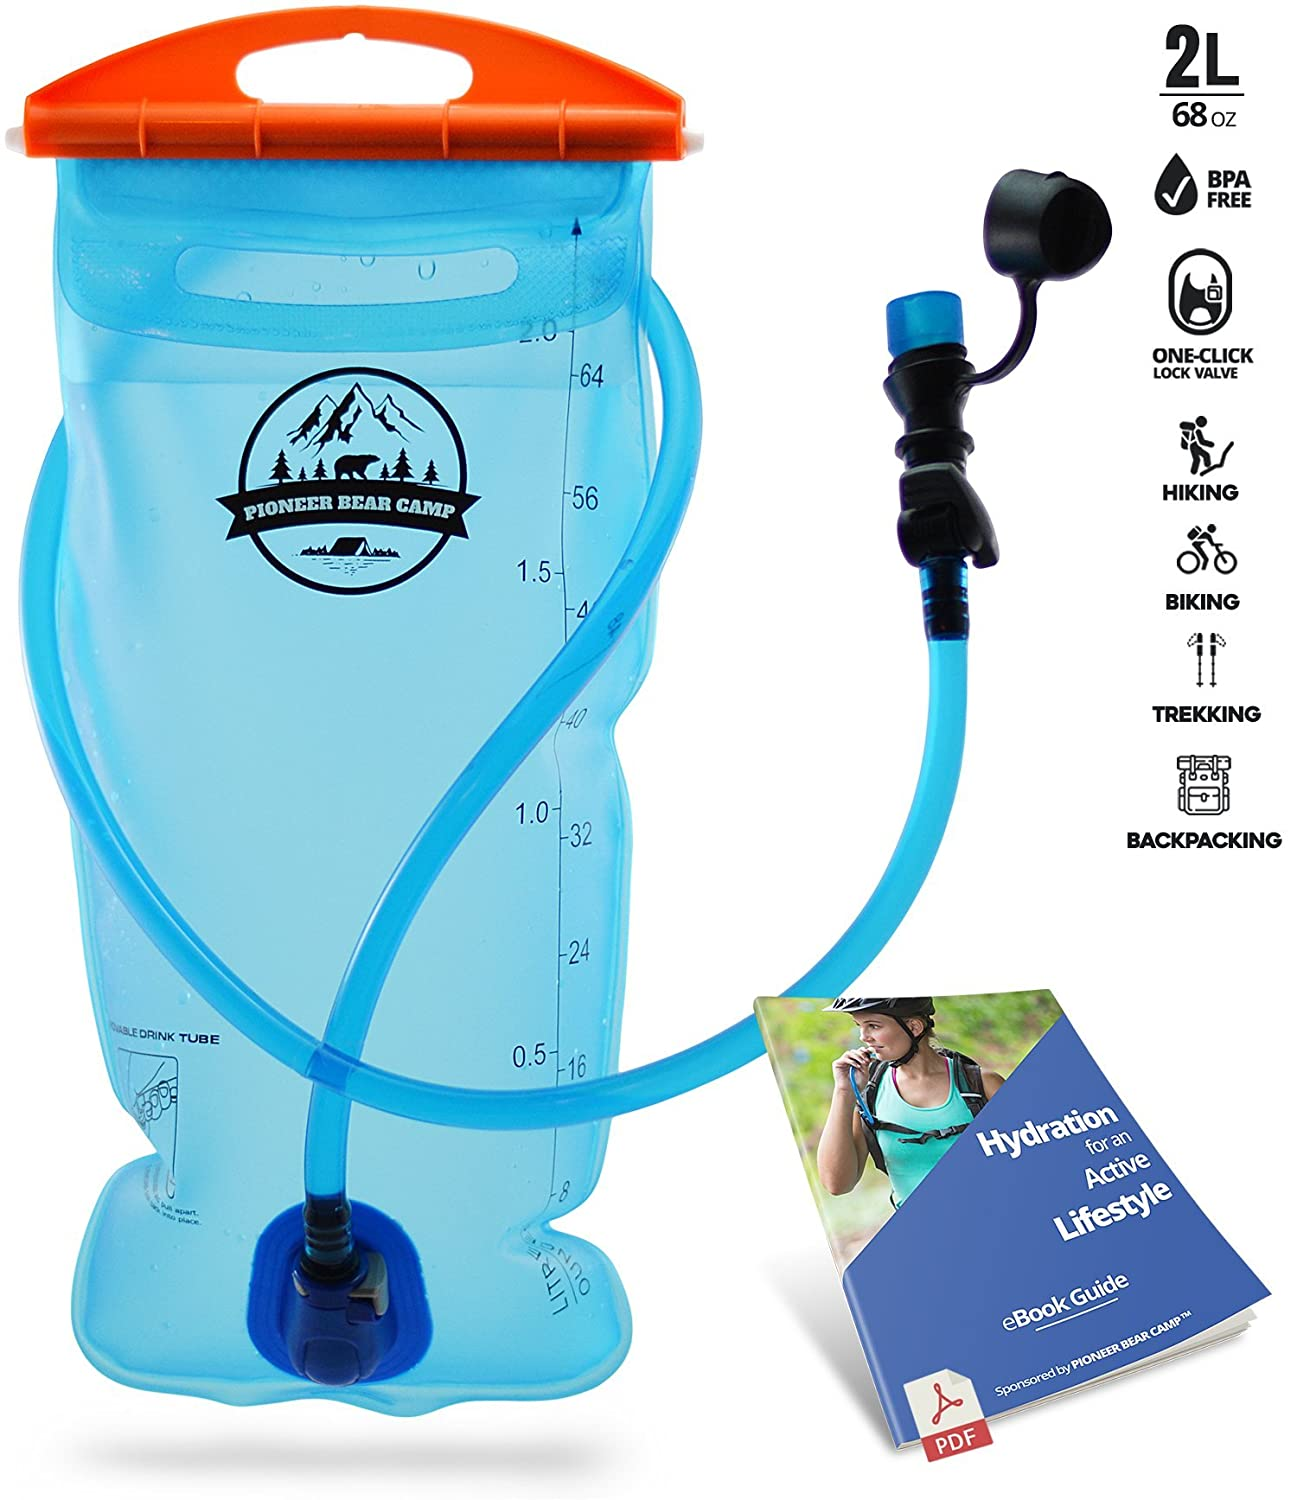 PIONEER BEAR CAMP Hydration Bladder 2l Water Reservoir Leak Proof Hydration Pack BPA Free Quick Release Insulated Tube & Shutoff Valve Best Hydration Reservoir for Hiking Camping Running Biking